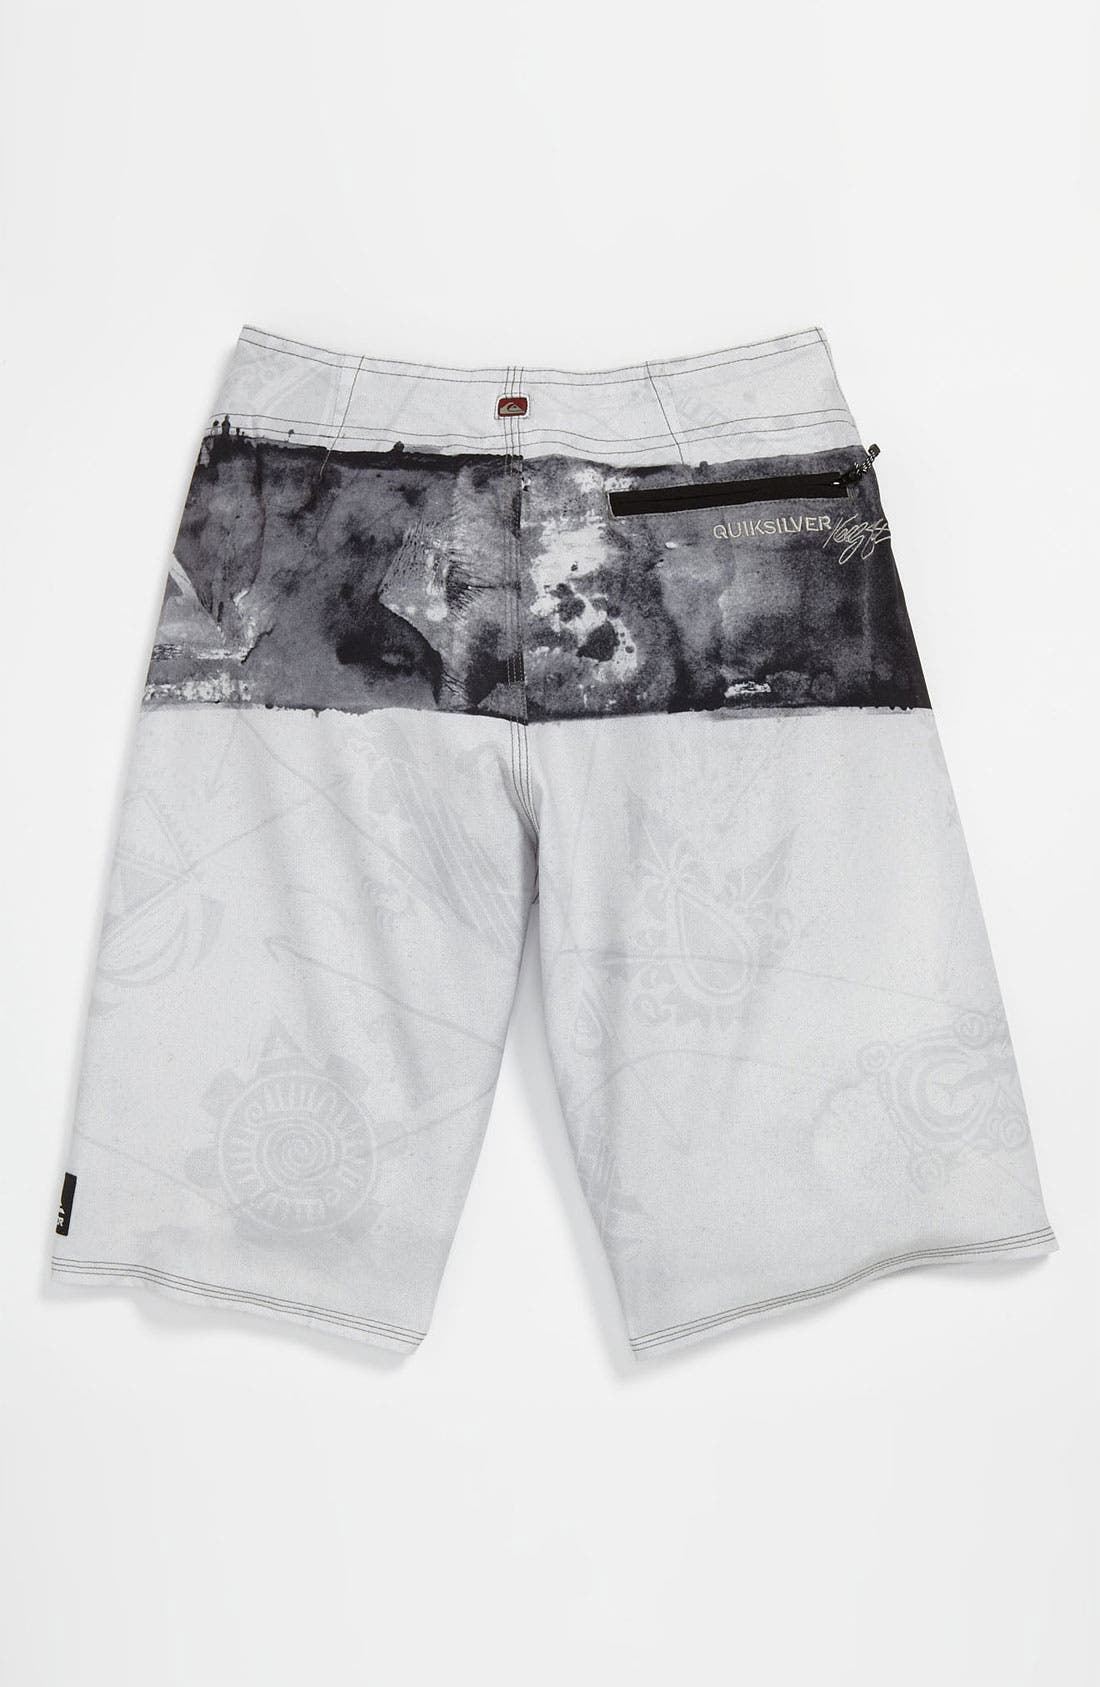 Alternate Image 2  - Quiksilver 'Cypher Kelly Nomad'  Board Shorts (Big Boys)